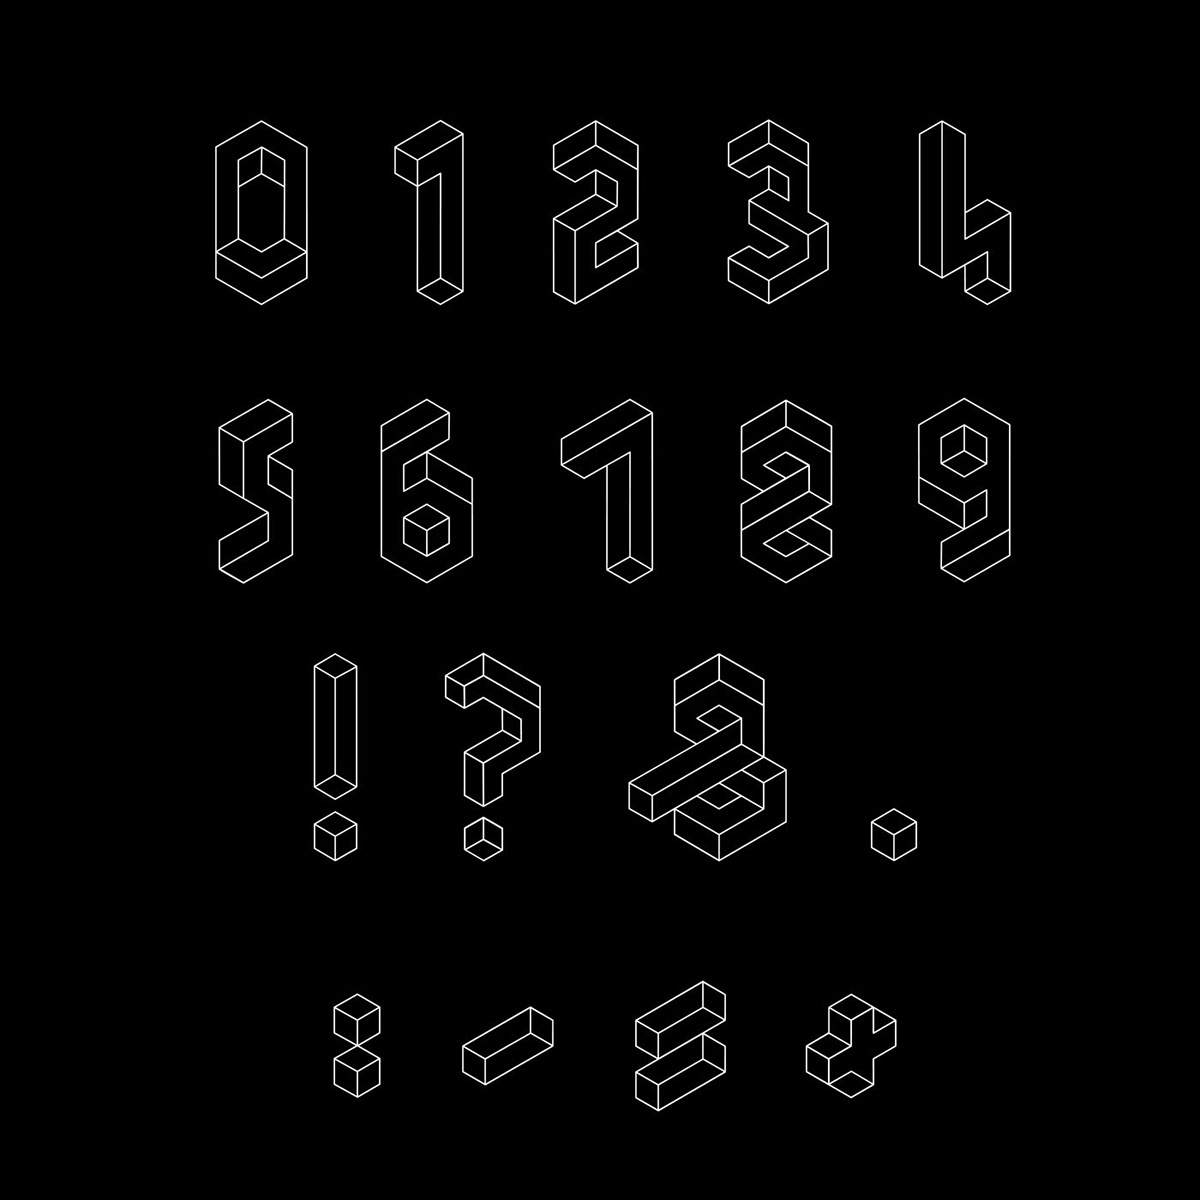 Impossible Type Concept Font Inspired by MC Escher by Fleta Selmani